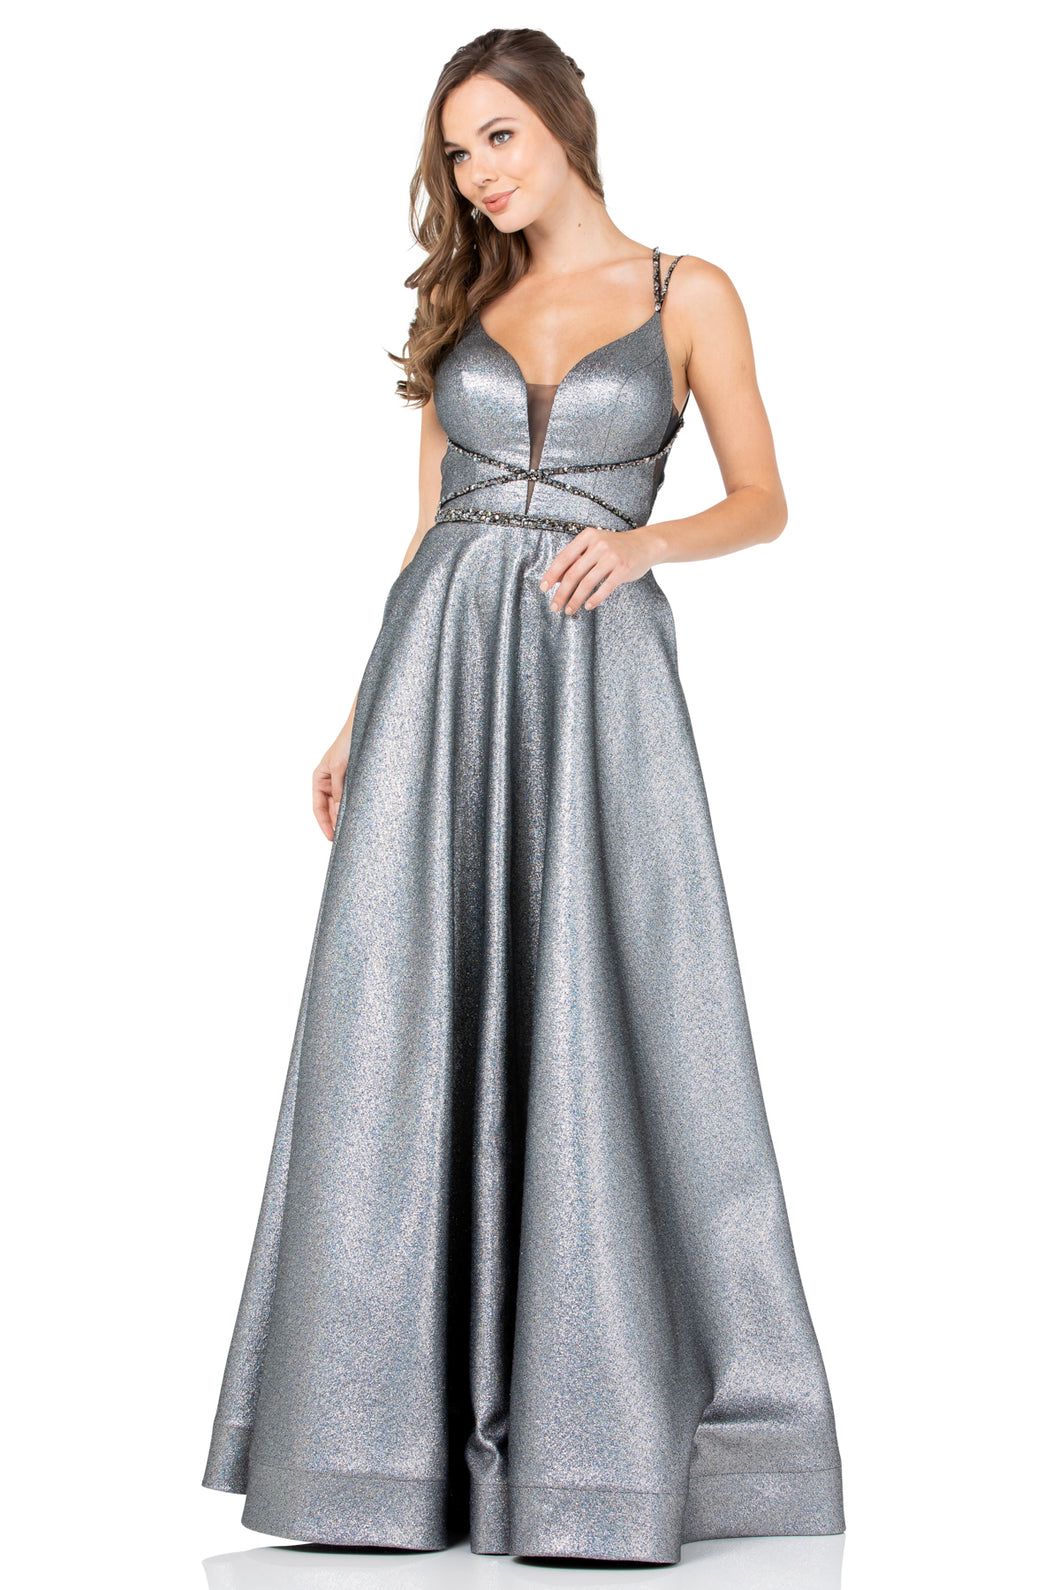 BC RR8794 - V-Neck Open Back A-Line Formal Gown with Strappy Bodice and Pockets - Diggz Prom